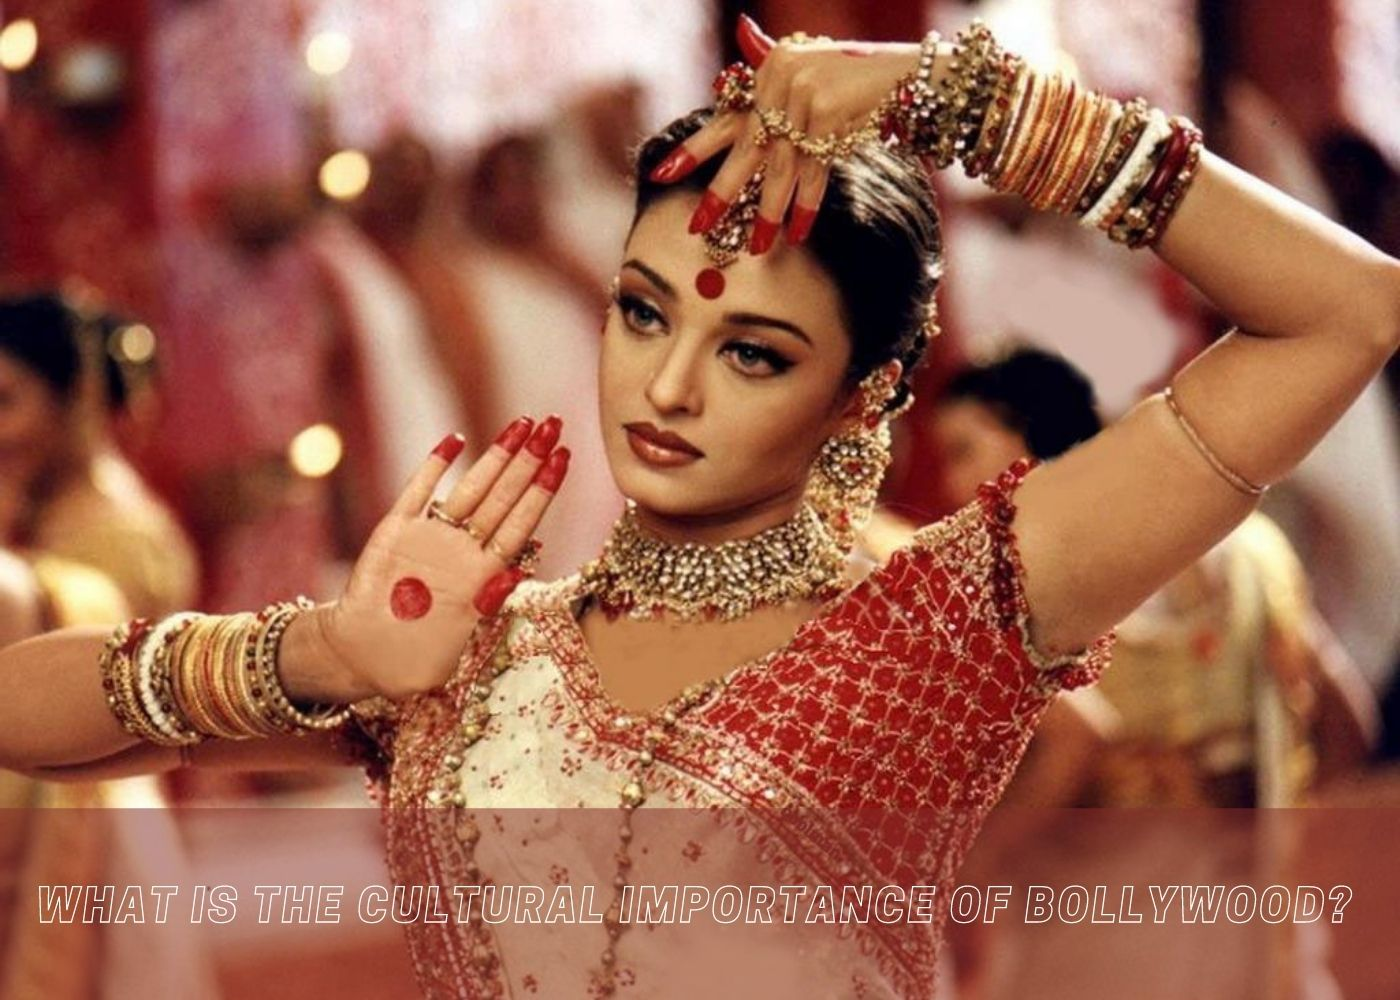 What is the cultural importance of Bollywood?